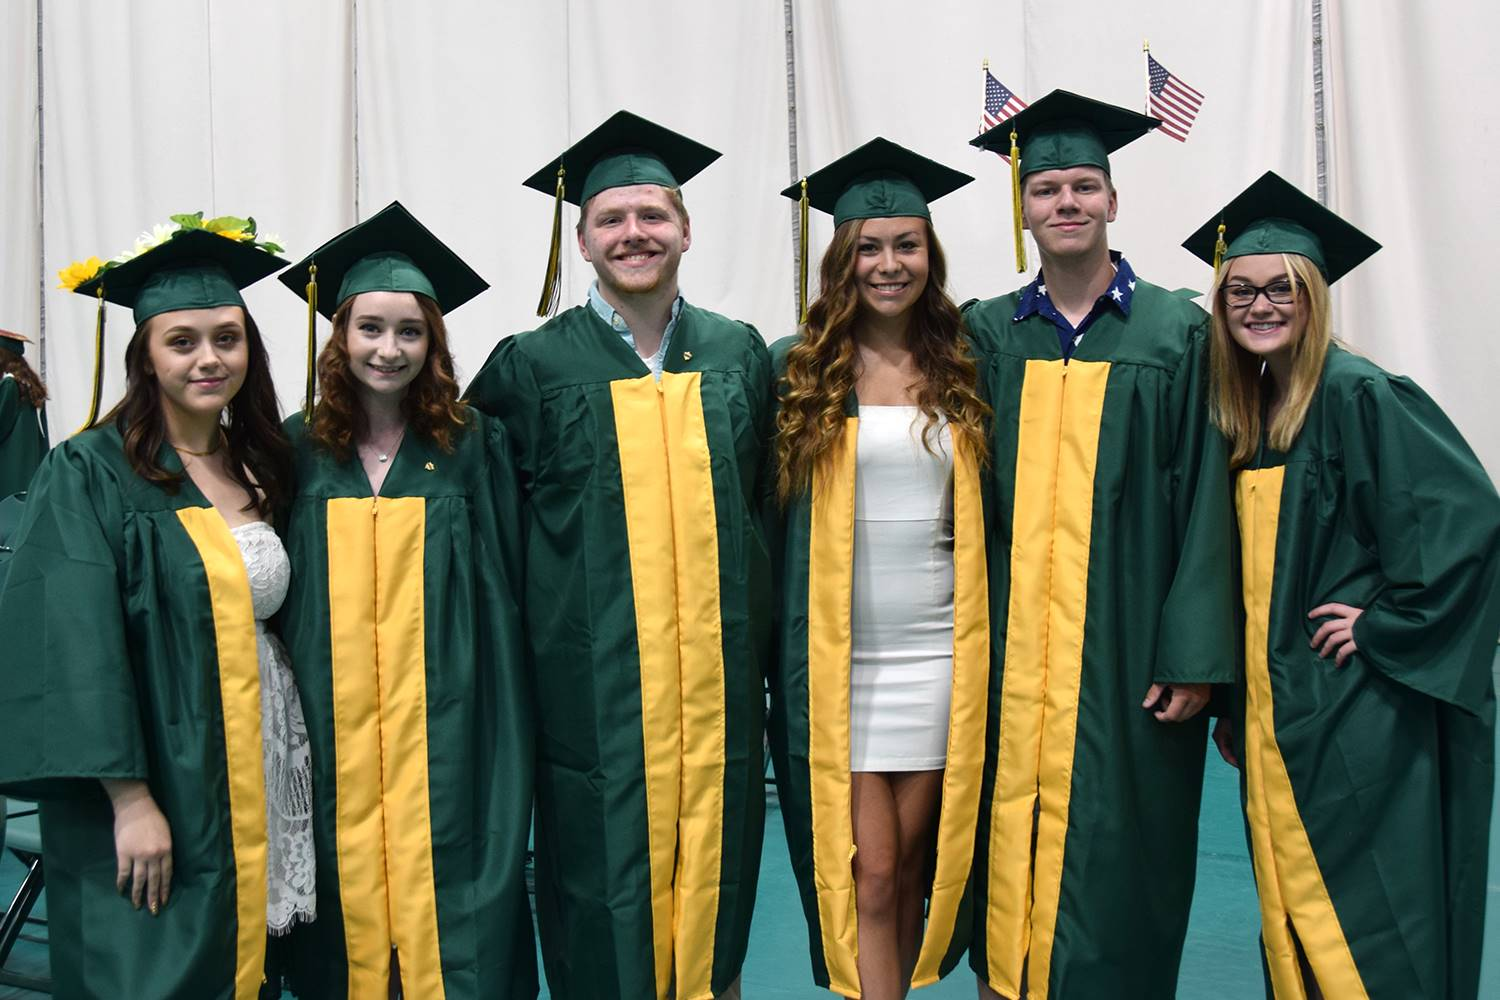 Six friends get ready behind the white curtain in the Binghamton University Events Center before the